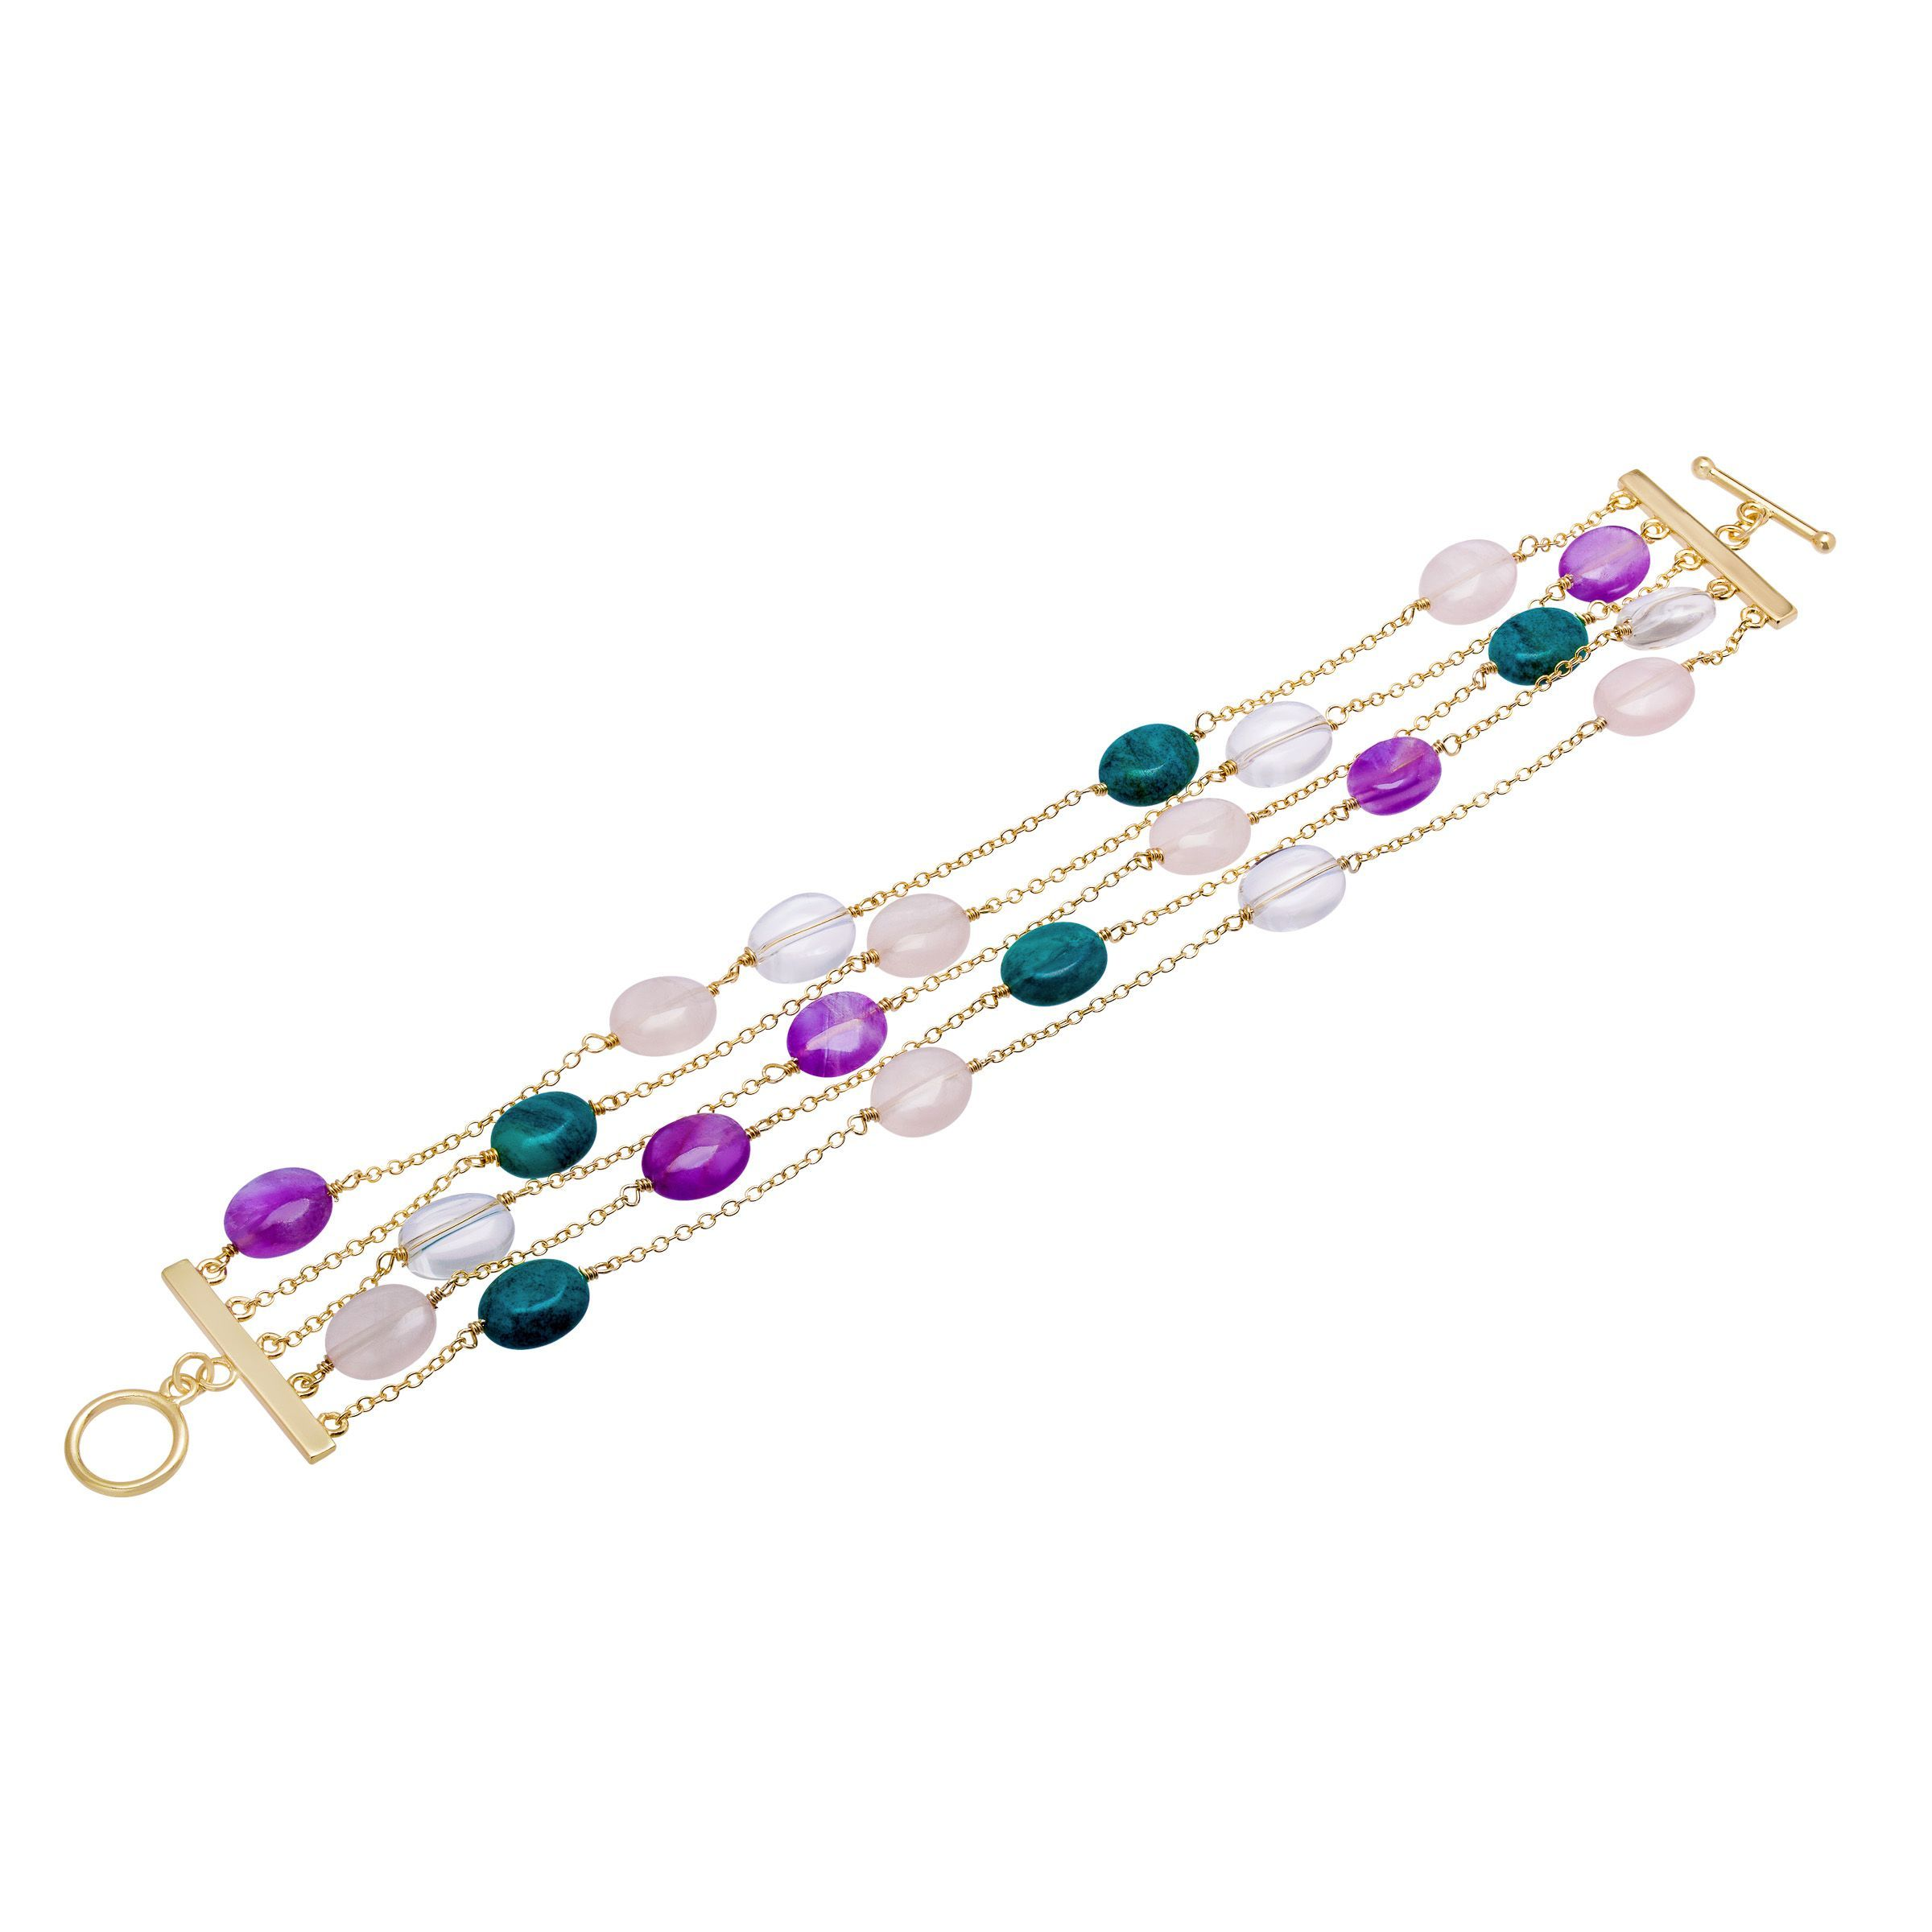 766943ca3bd81a Details about Natural Multi-Stone Bracelet in 14K Gold-Plated Sterling  Silver